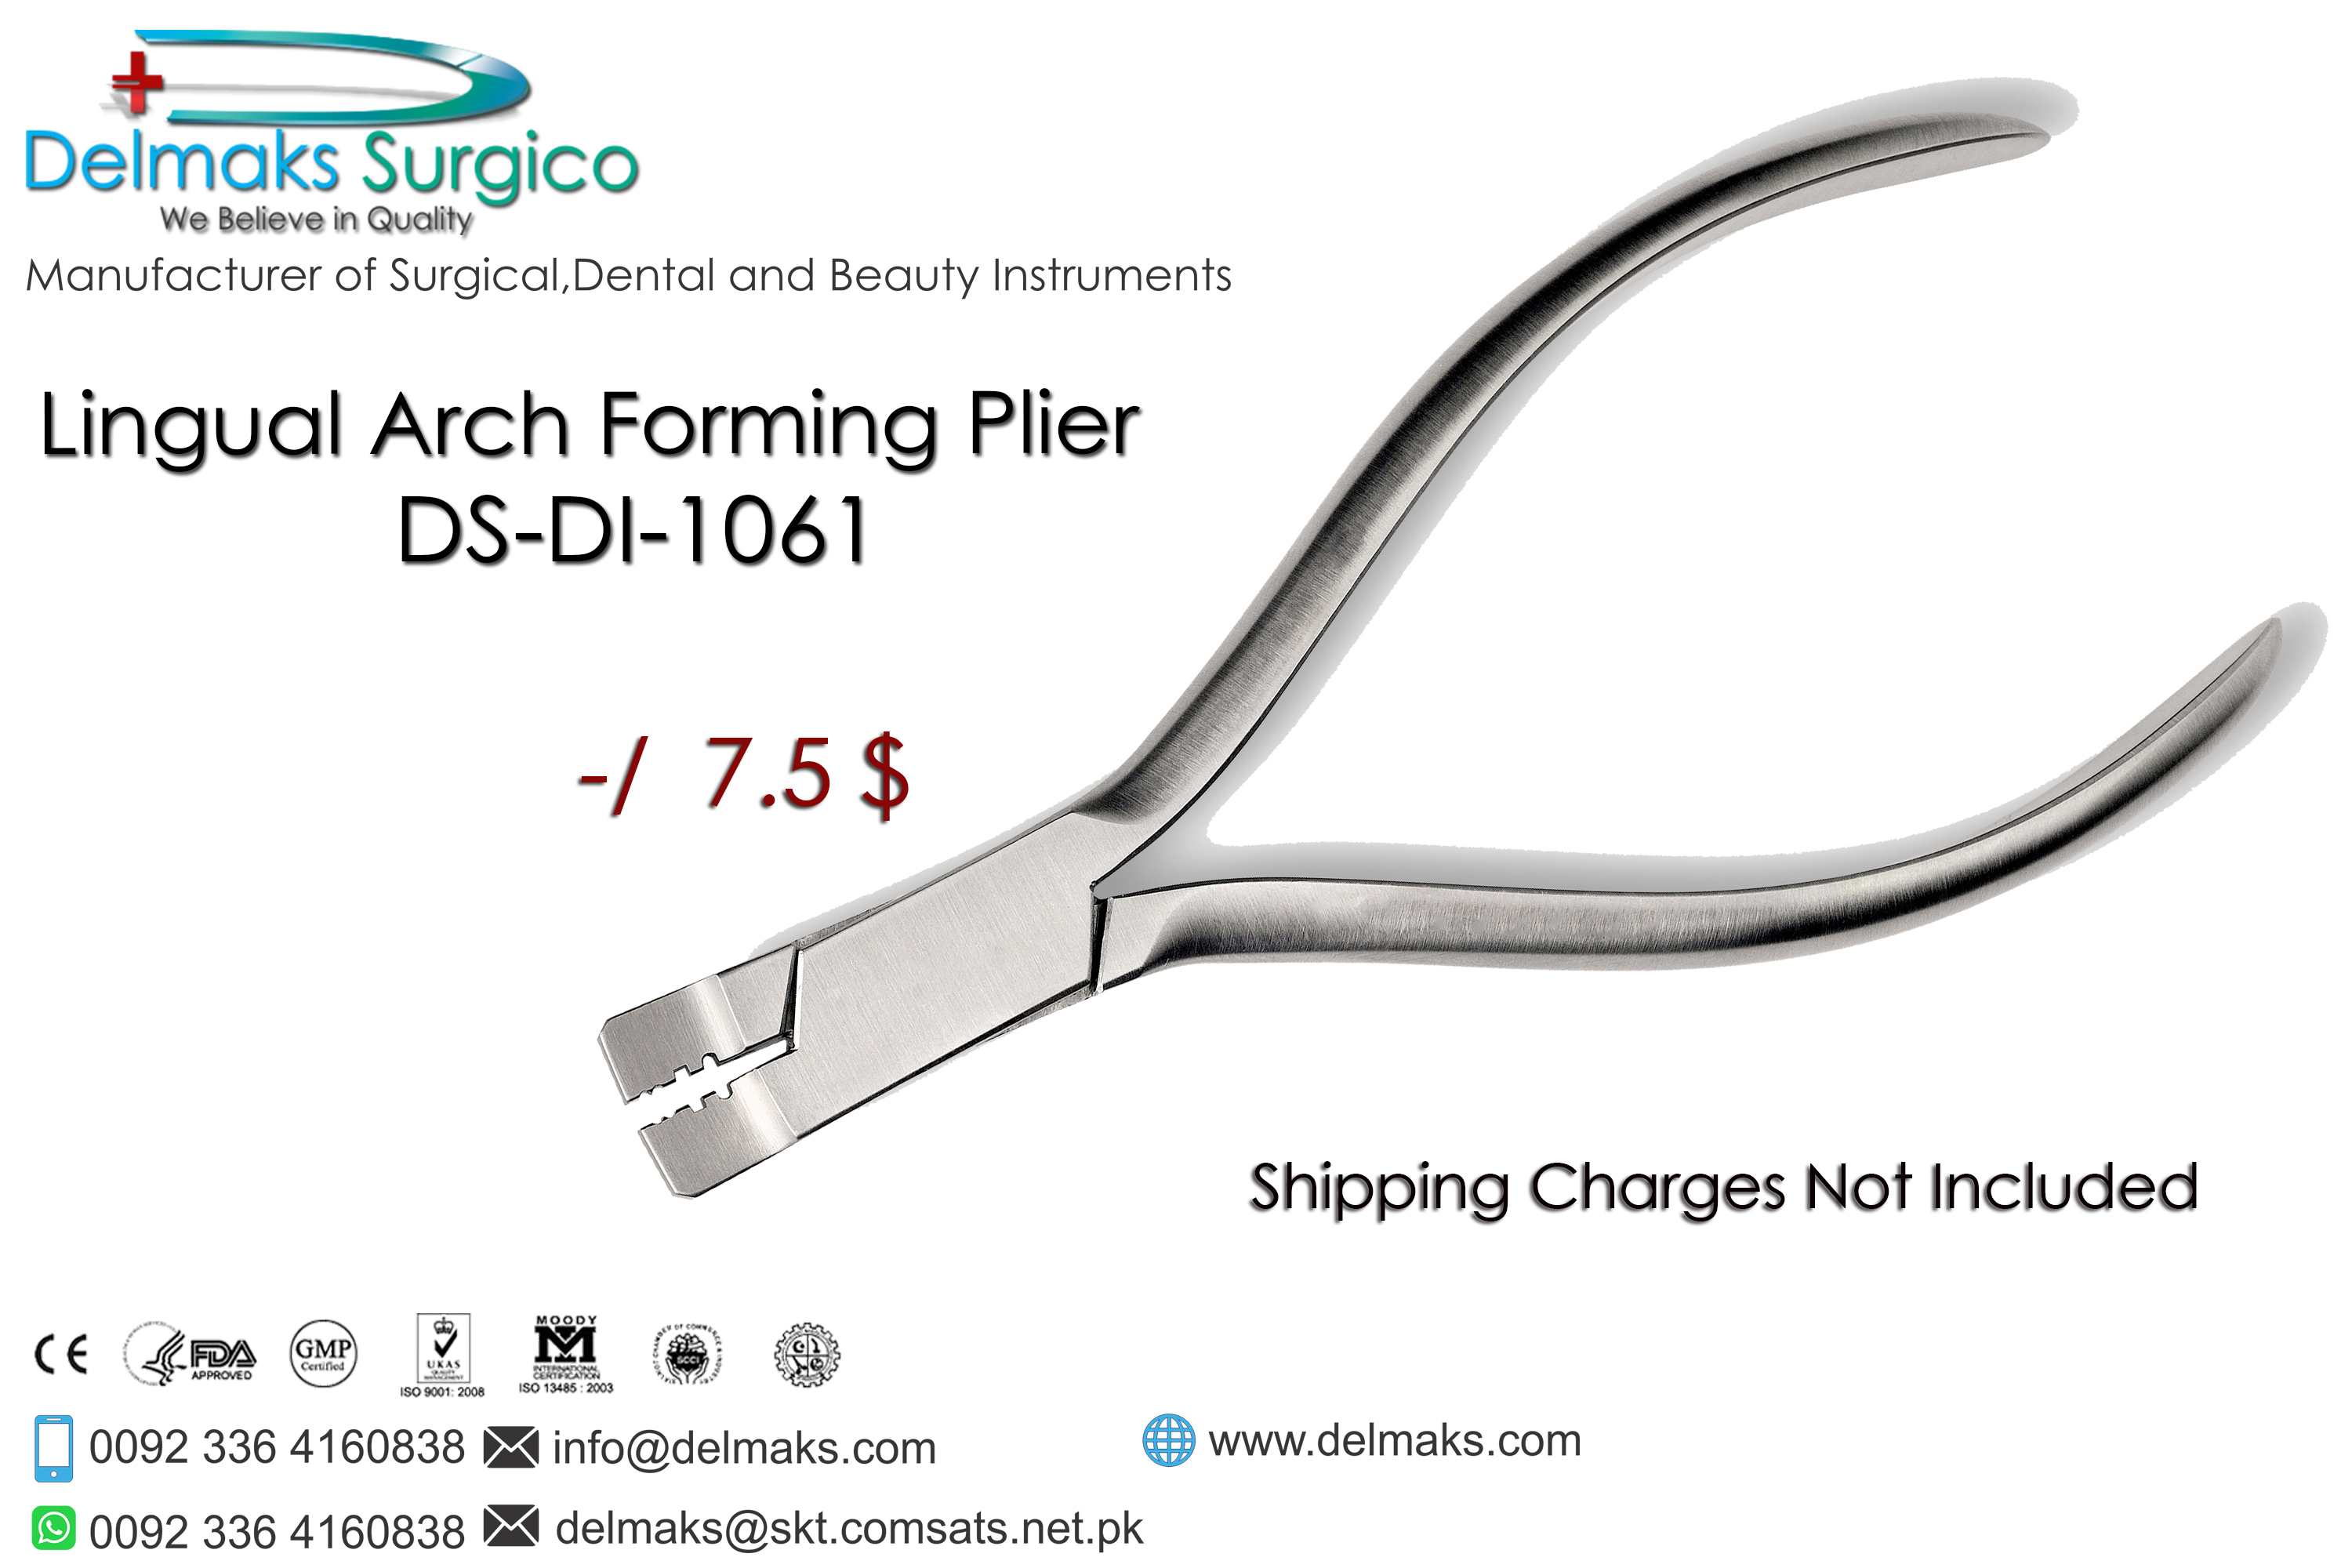 Lingual Arch Forming Plier-Orthodontic Pliers-Orthodontic Instruments-Dental Instruments-Delmaks Surgico